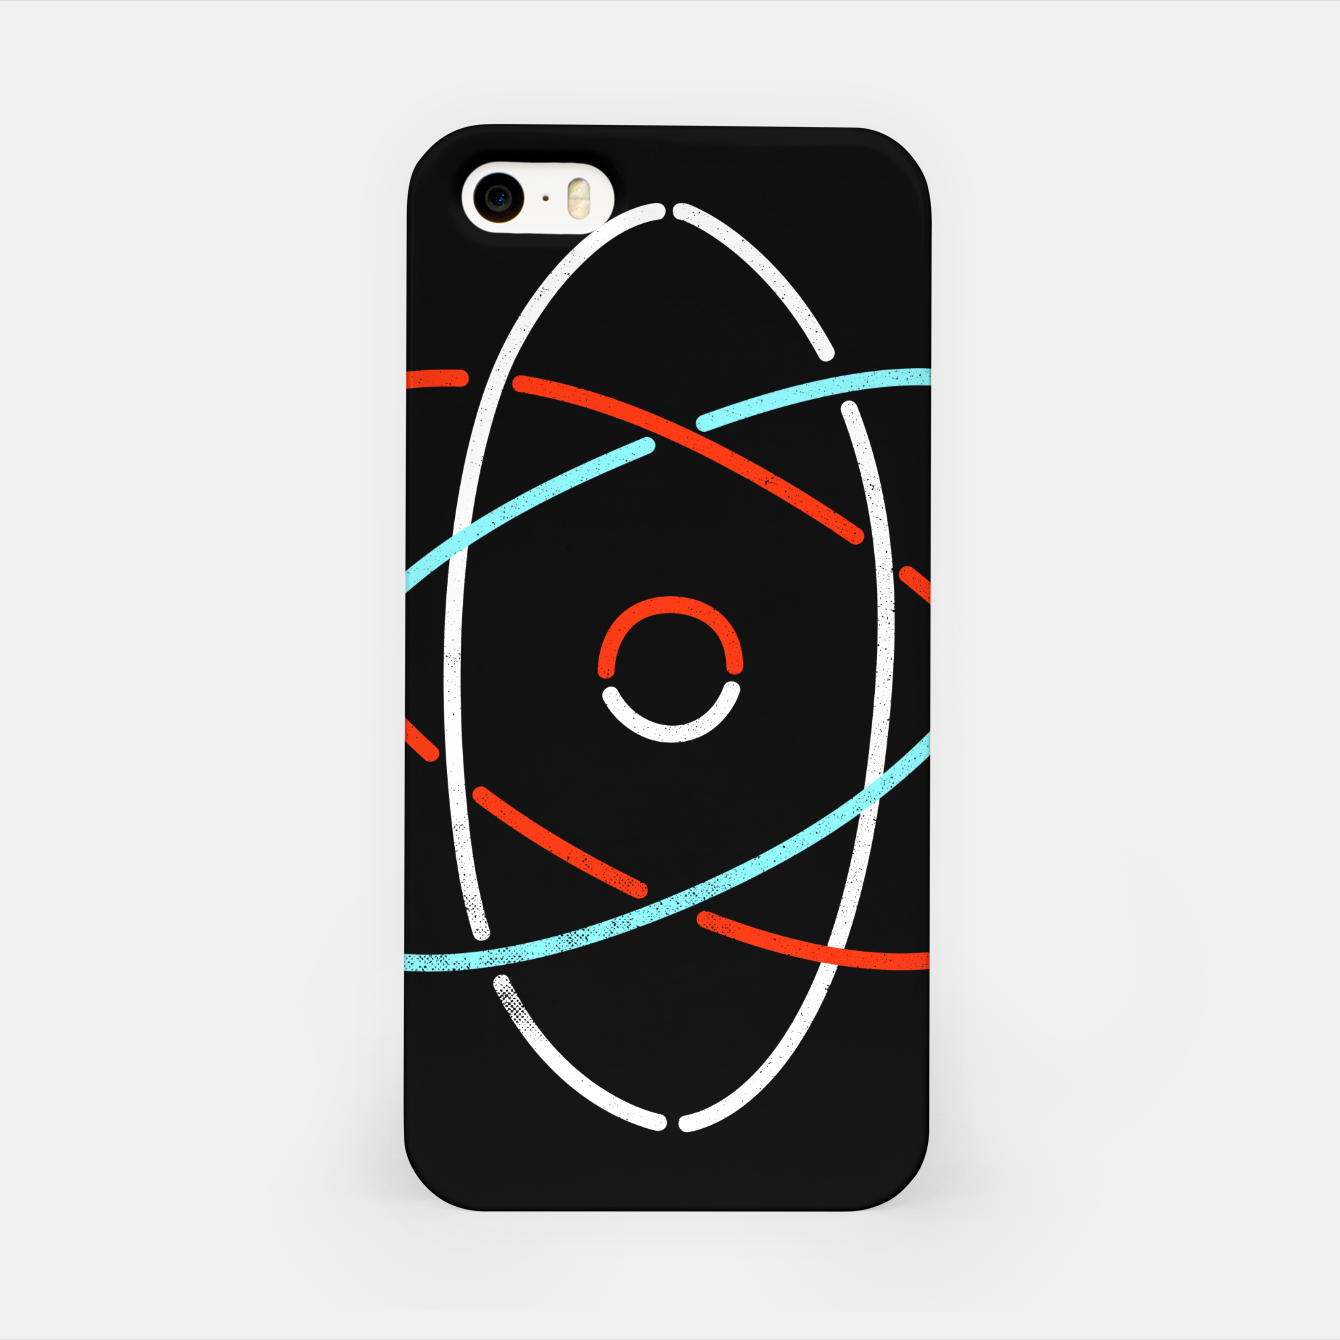 Image of Science iPhone Case - Live Heroes